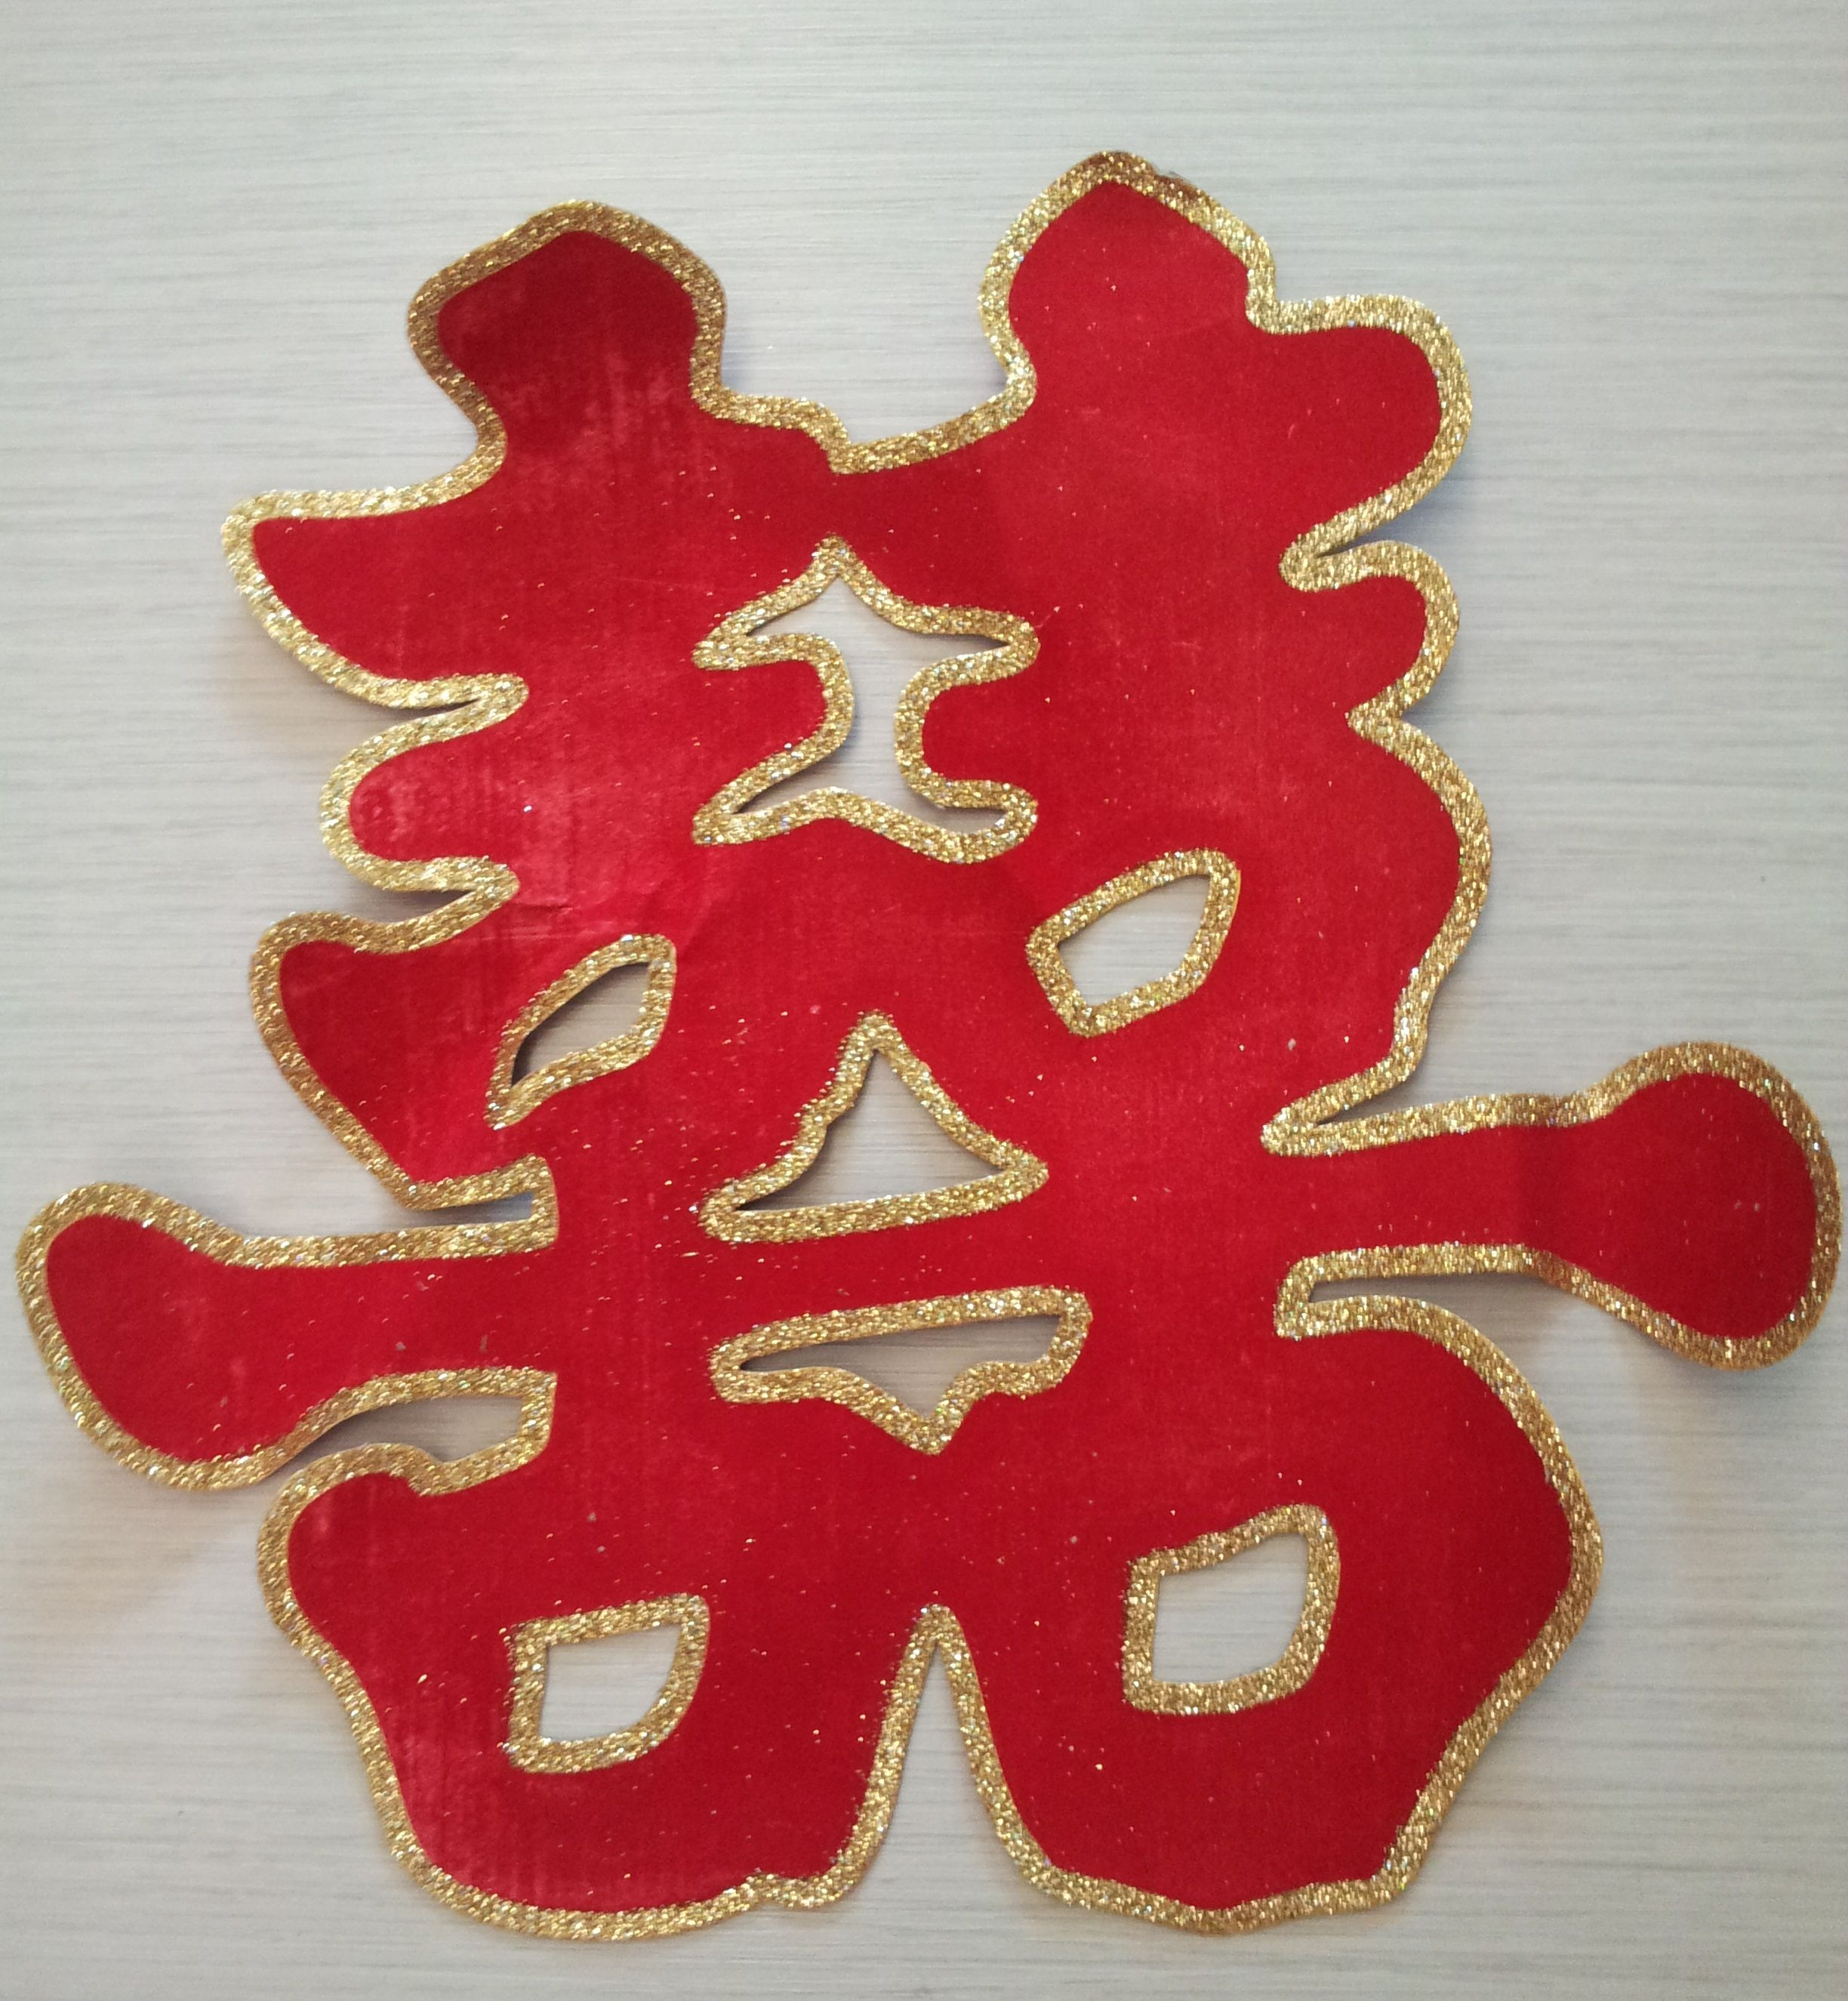 Traditional Chinese Decorations